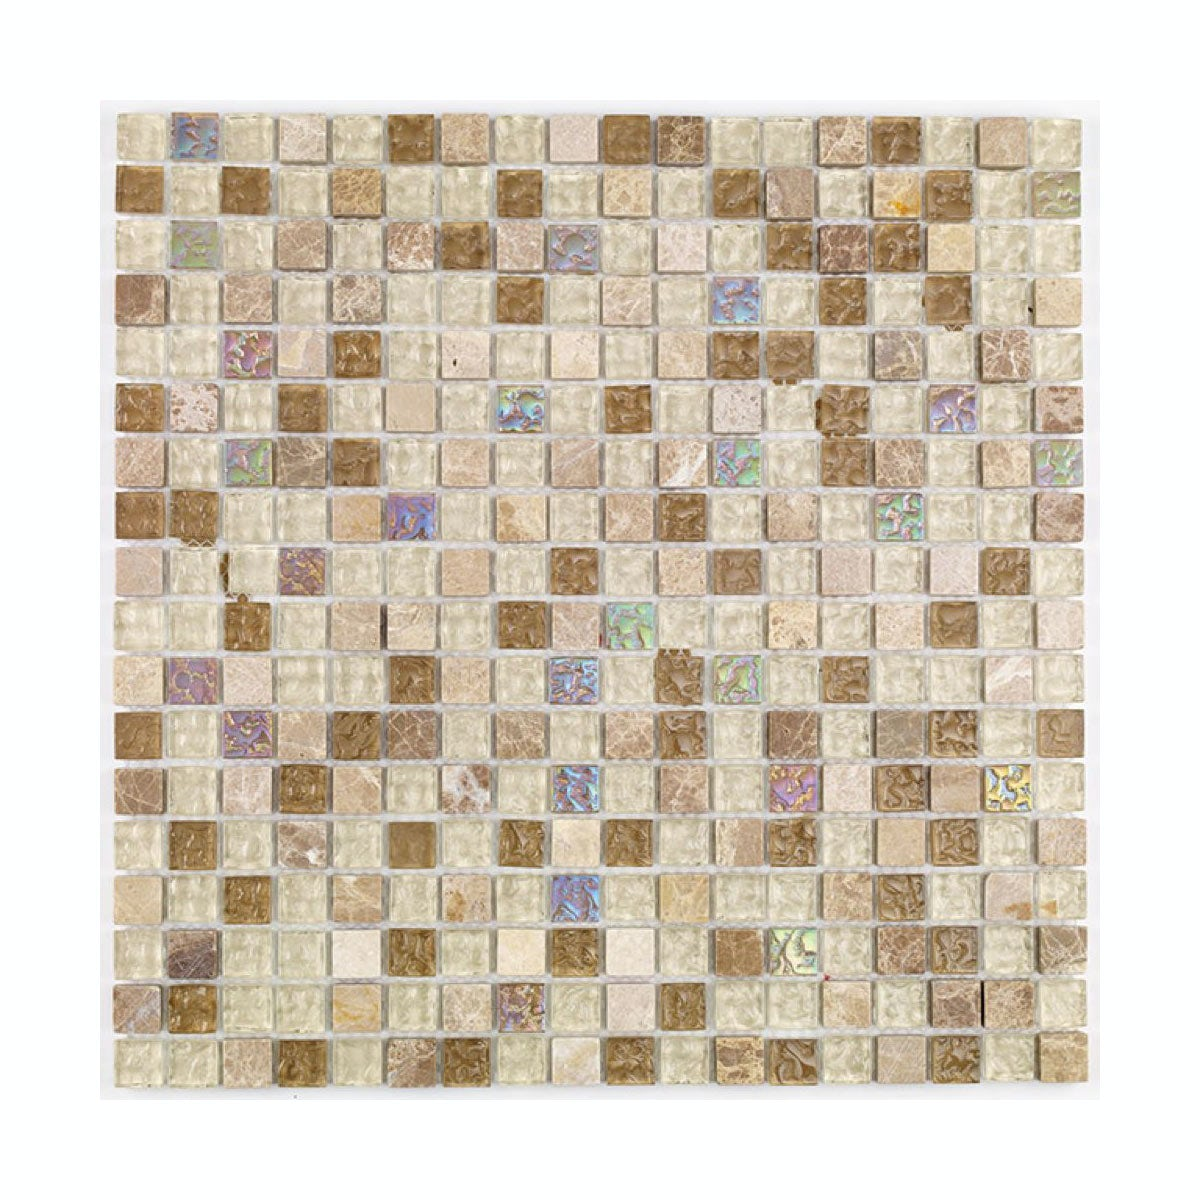 British Ceramic Tile Mosaic freckle beige gloss tile 300mm x 300mm - 1 sheet